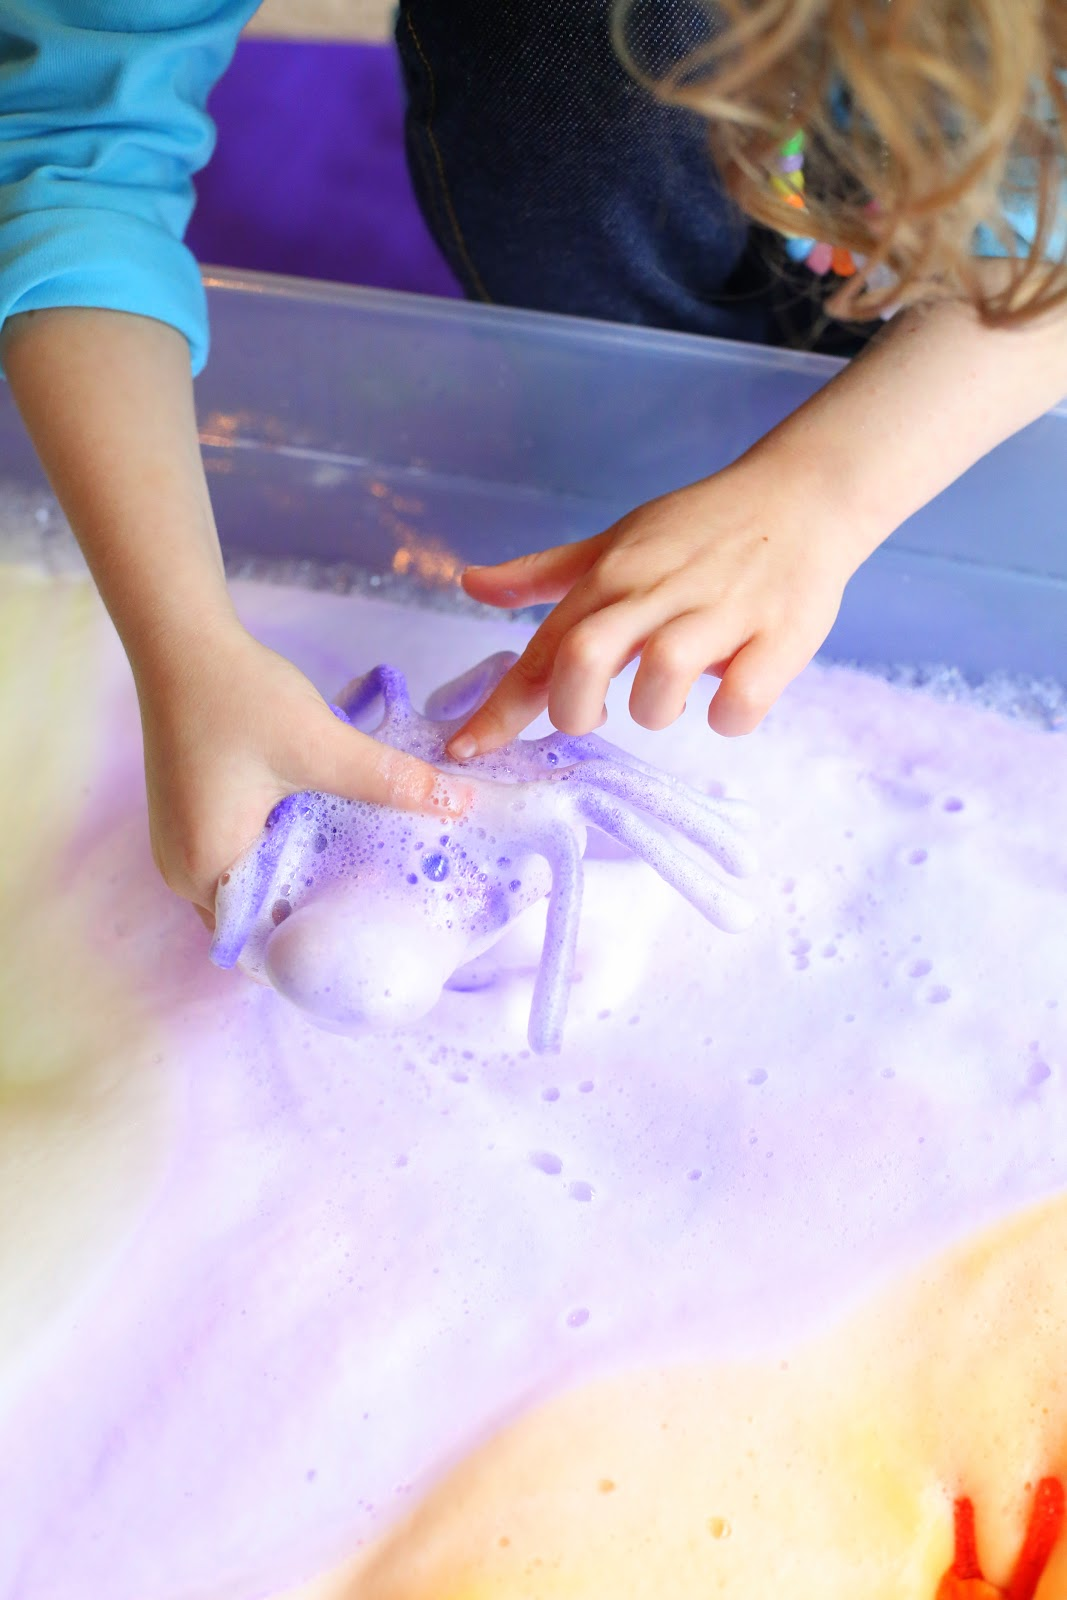 Magic Halloween Foaming Spiders - they shoot out rays of colored soap foam and disappear into a mound of fluffy colored foam, leaving baby spiders behind.  From Fun at Home with Kids